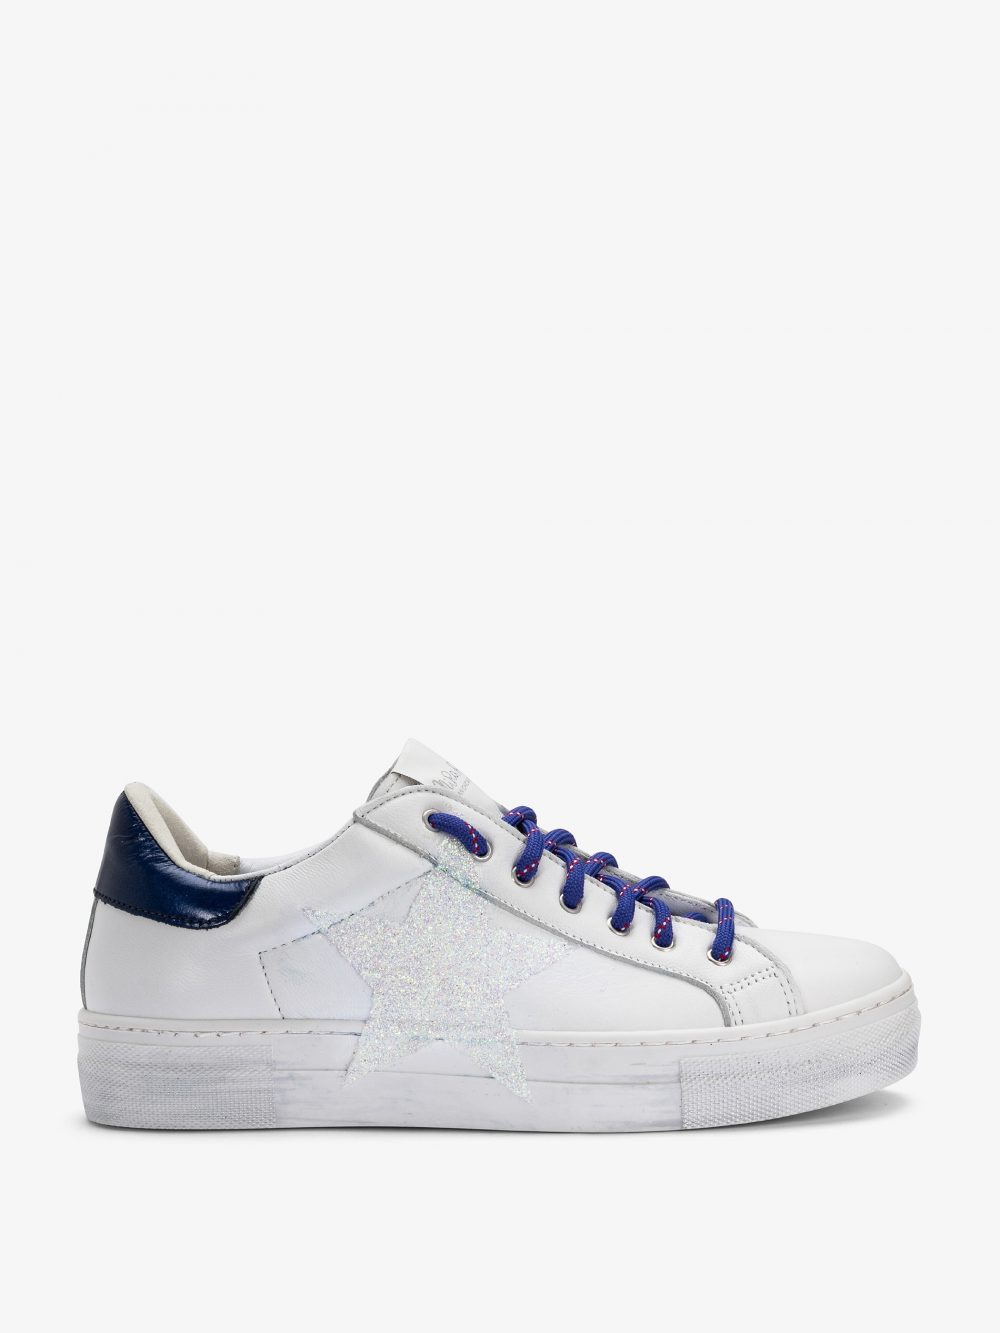 sneakers-in-pelle-donna-martini-vintage-blue-lips-stella (1)